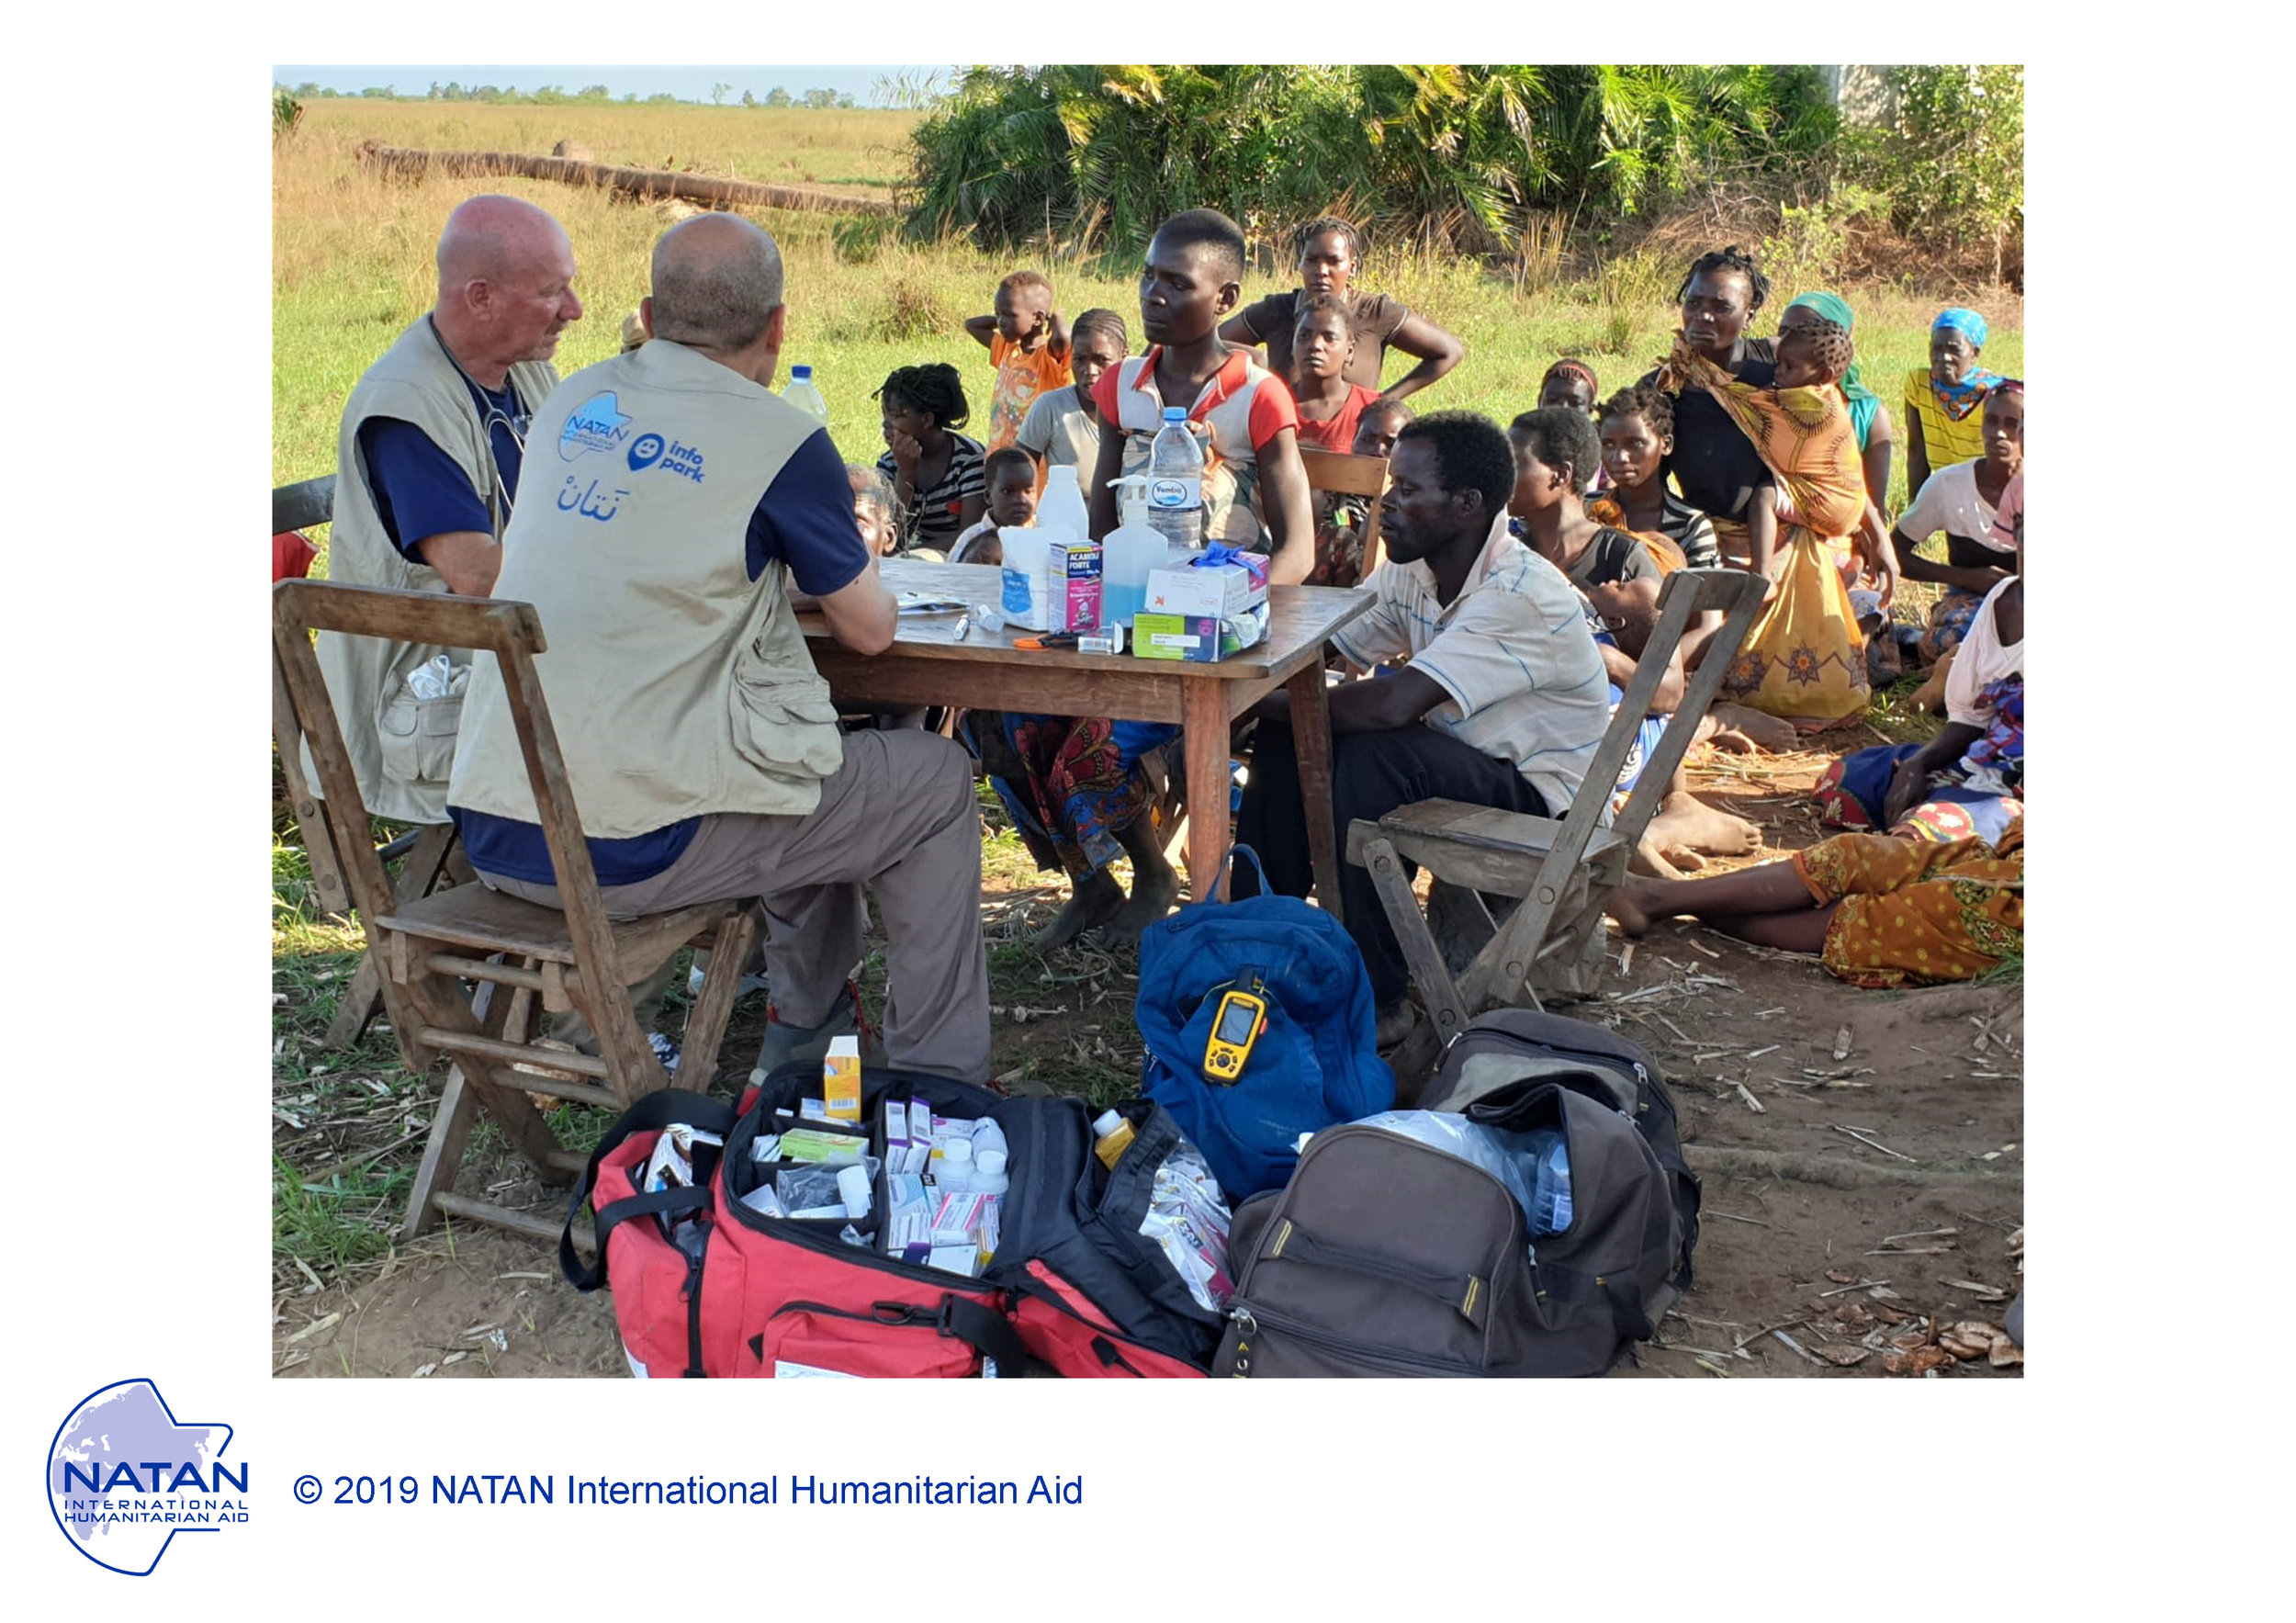 MOZAMBIQUE 2019: NATAN TEAMS PROVIDE PRIMARY MEDICAL CARE AND HEALTH ASSESSMENTS IN OUTDOOR FIELD CLINICS IN BEIRA REGION OF MOZAMBIQUE FOLLOWING CYCLONE IDAI